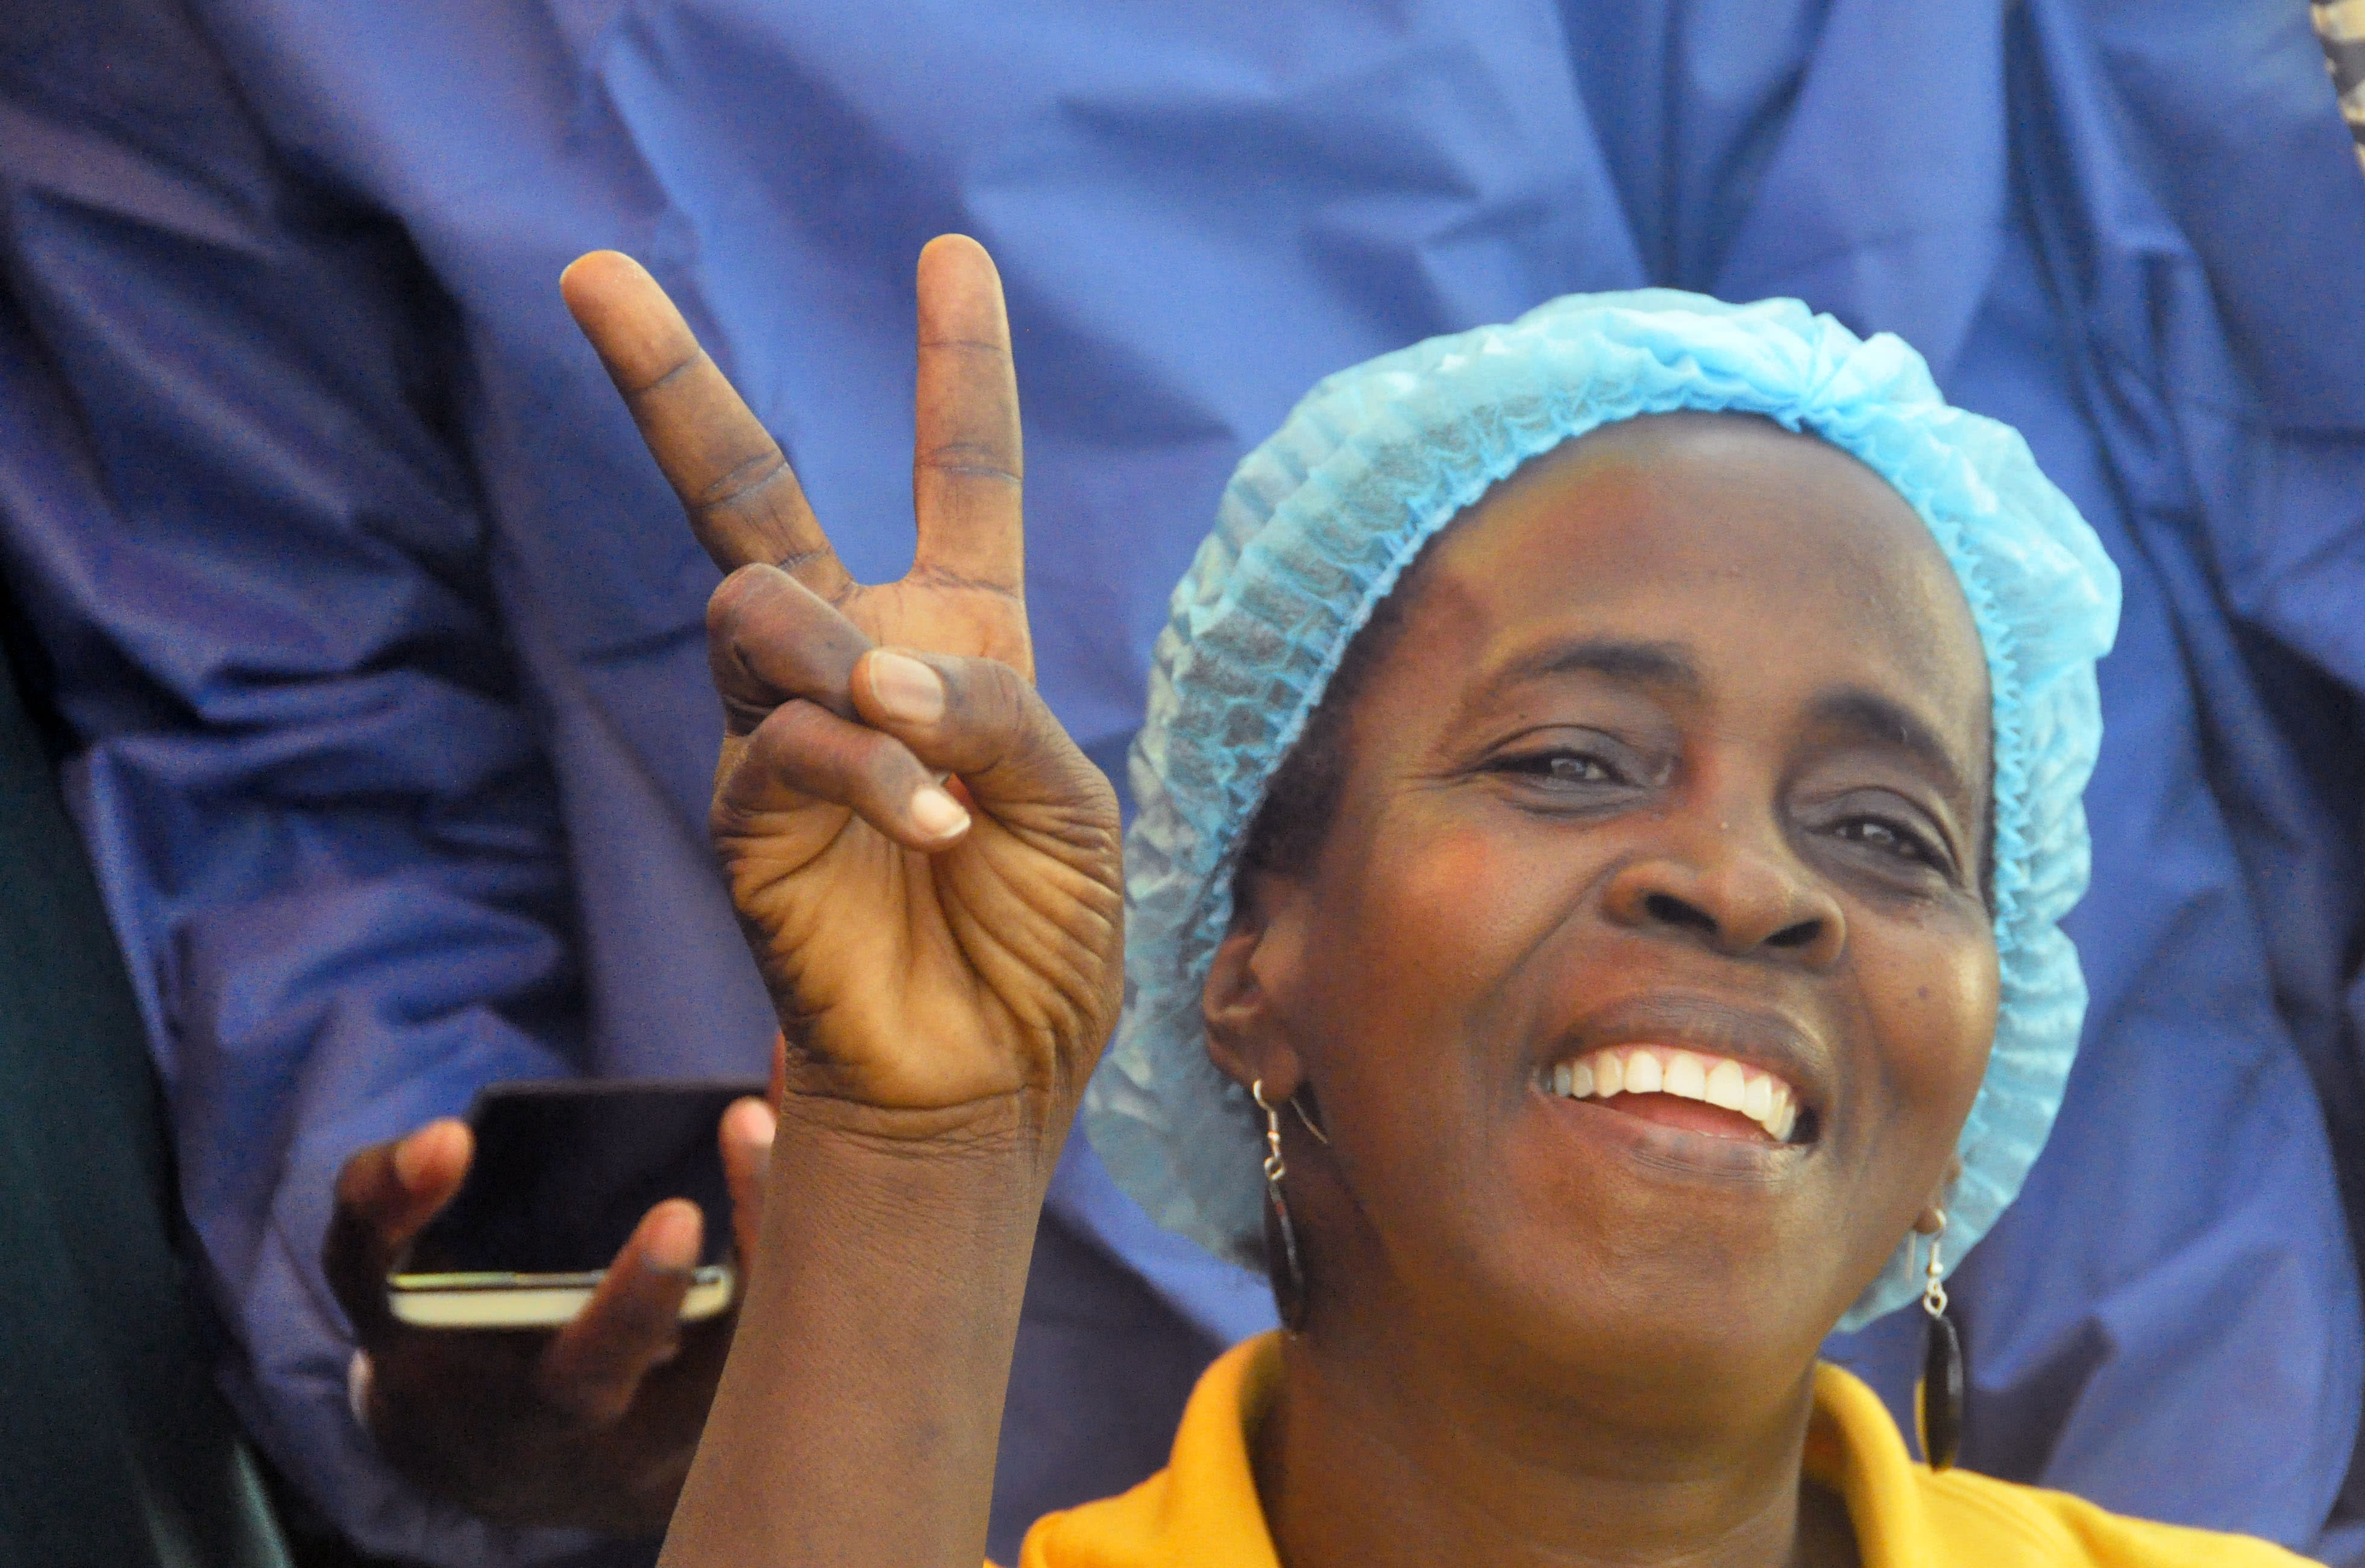 Last Ebola patient is released in Liberia